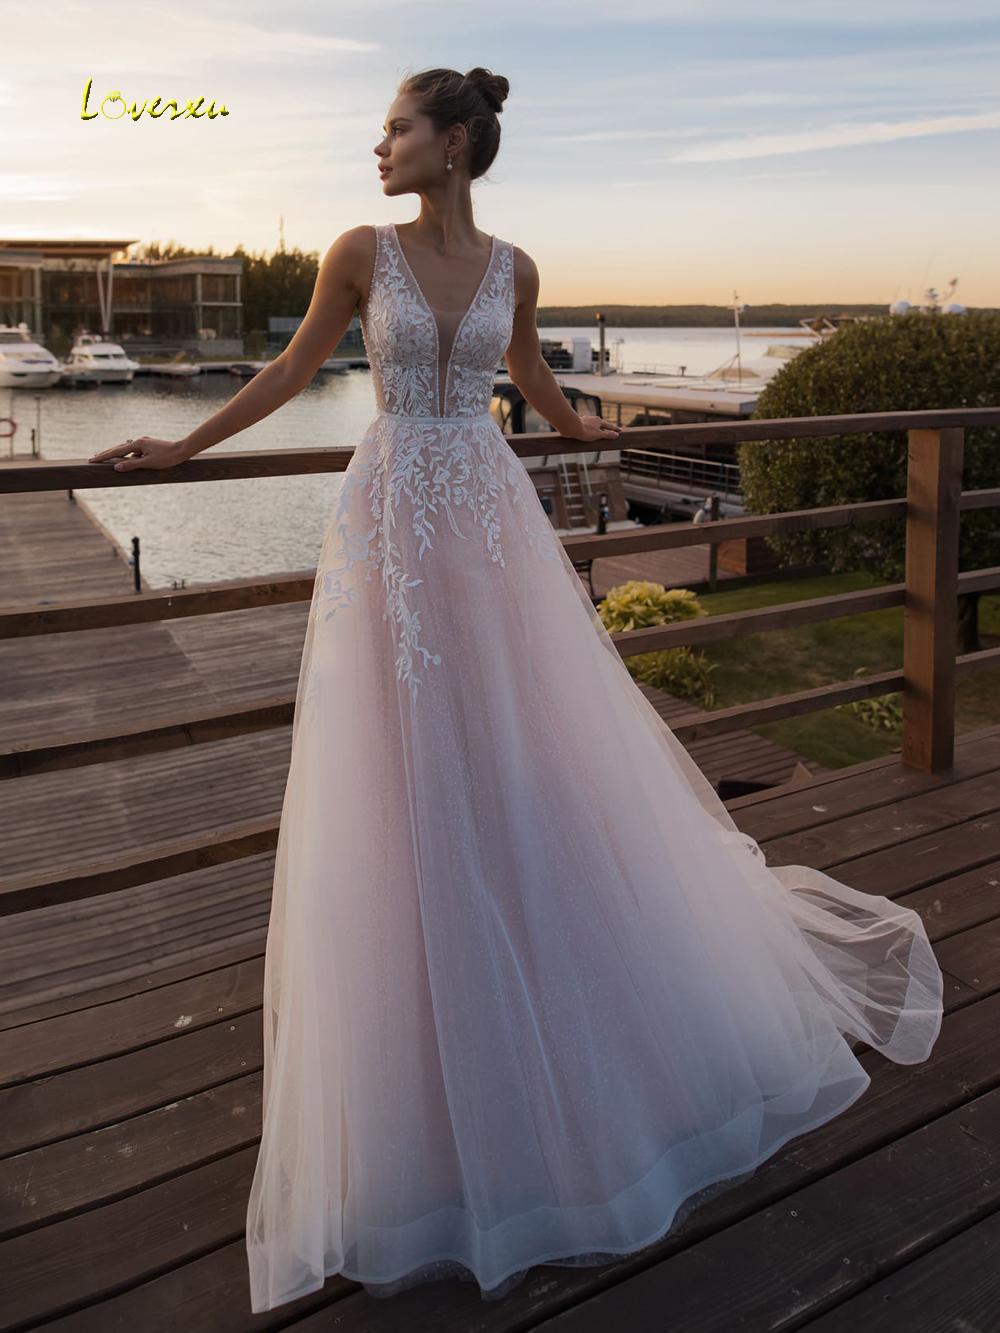 Loverxu Sexy Illusion V Neck Lace Beach Wedding Dresses 2019 Appliques Beaded Tank Sweep Train vintage Bridal Gowns Plus Size